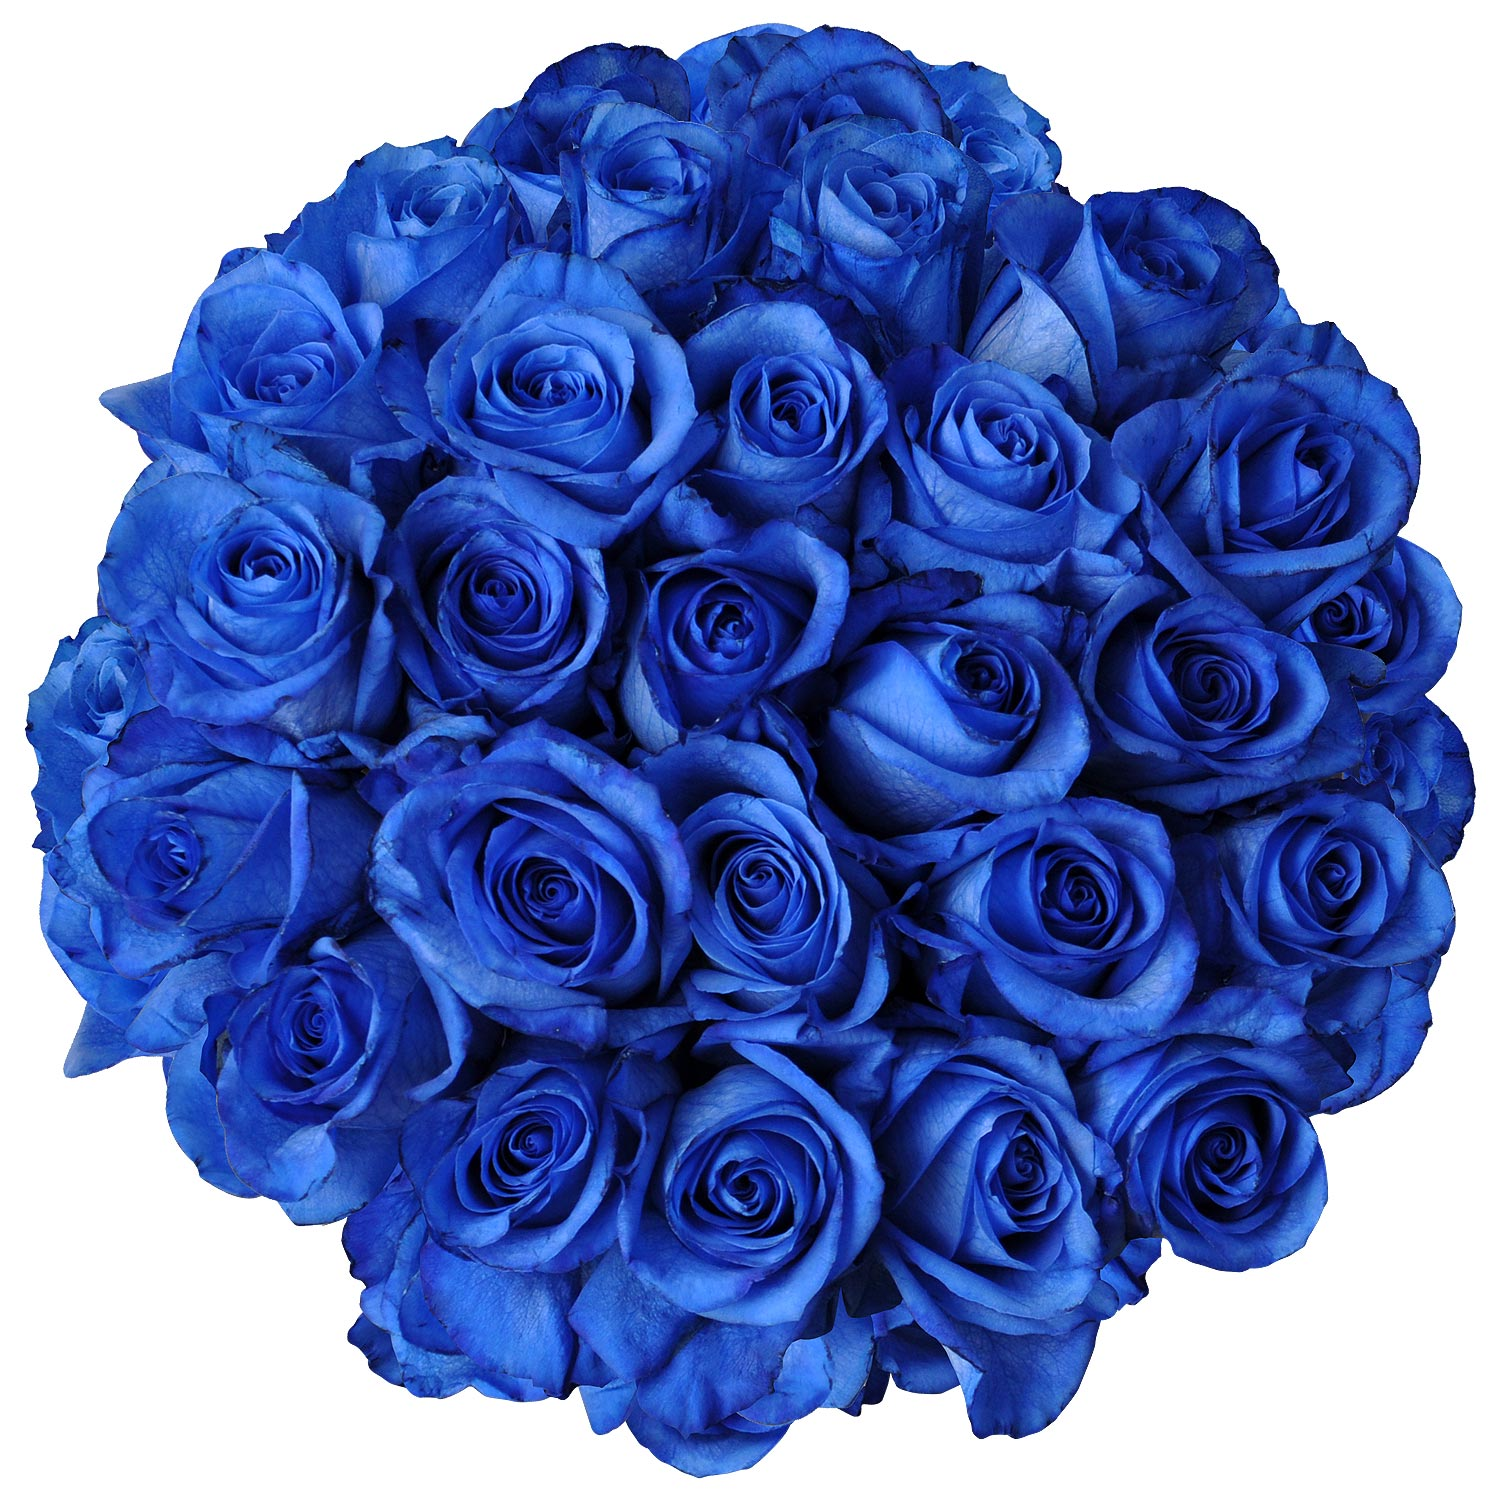 Natural Fresh Flowers Tinted Blue Roses 20 100 Stems Walmart